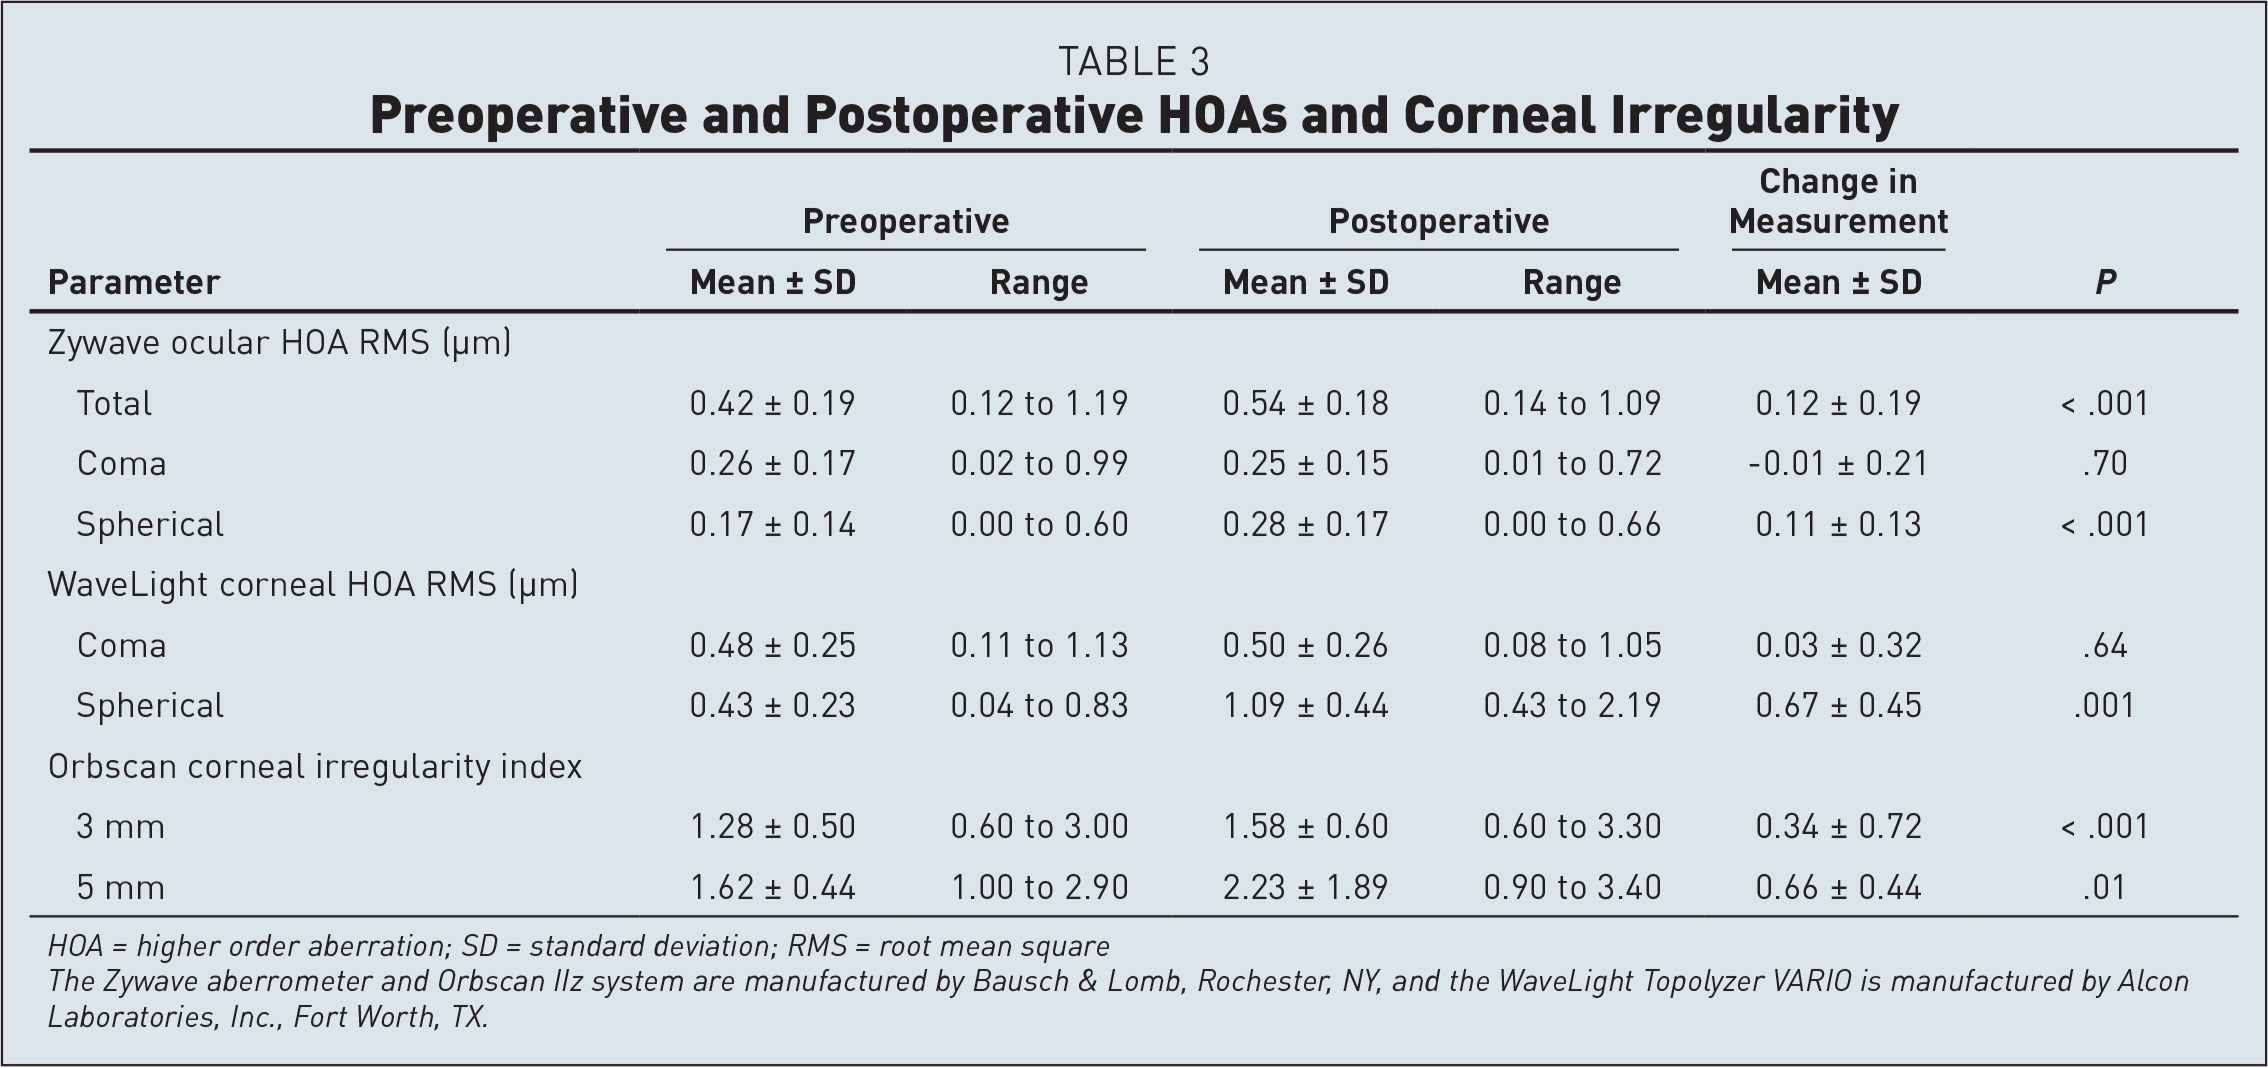 Preoperative and Postoperative HOAs and Corneal Irregularity